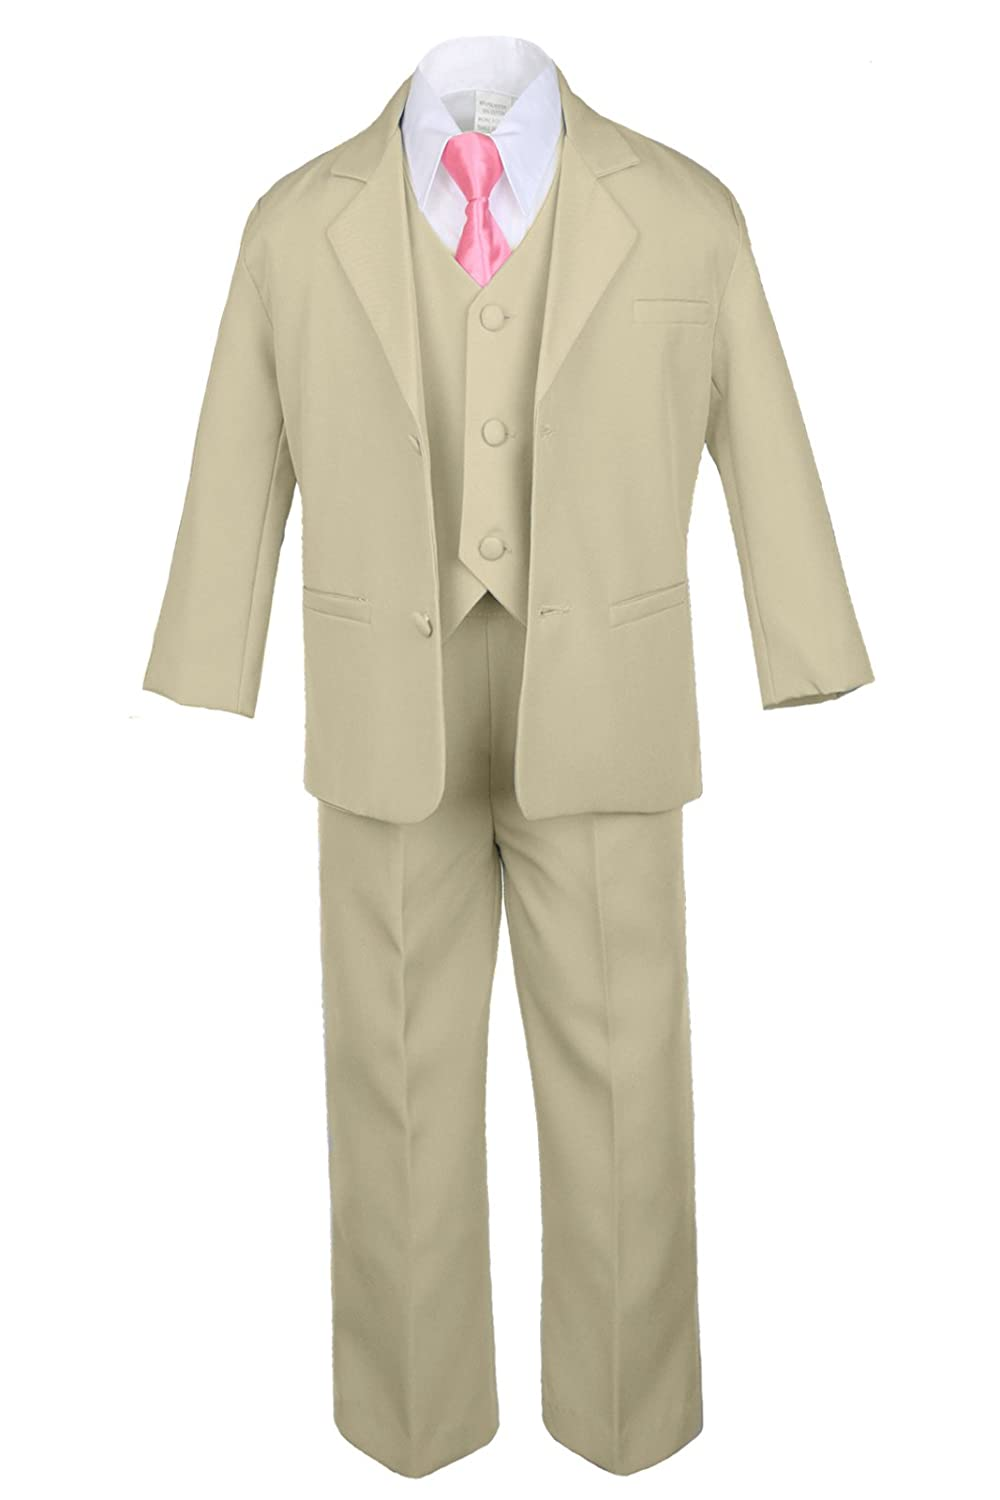 Unotux 6pc Boy Khaki Tuxedo Suits with Satin Coral Red Necktie from Baby to Teen